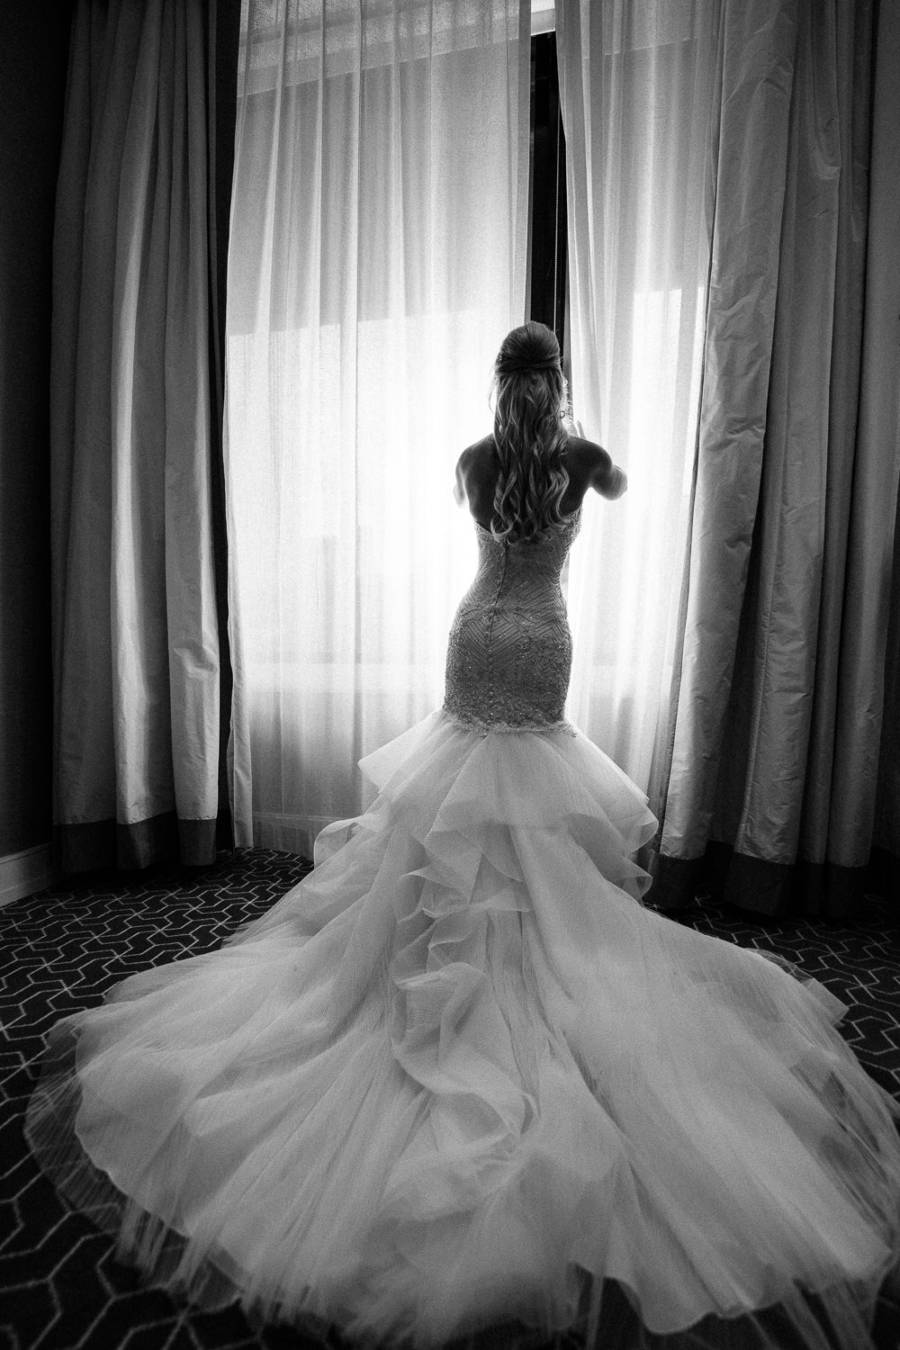 bride by hotel window by j & j photography studios